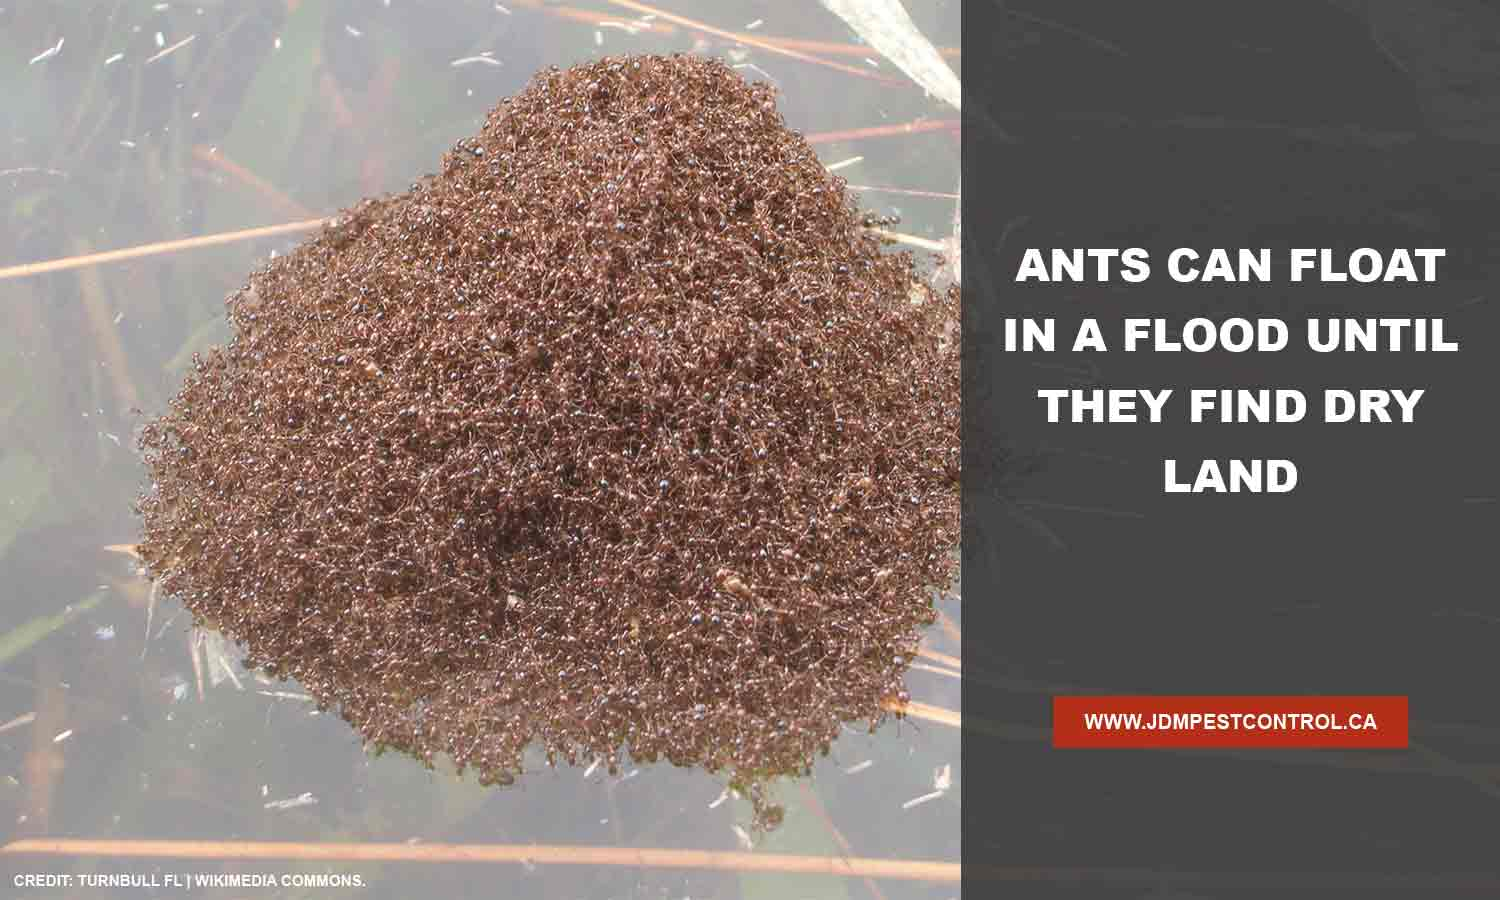 Ants can float in a flood until they find dry land